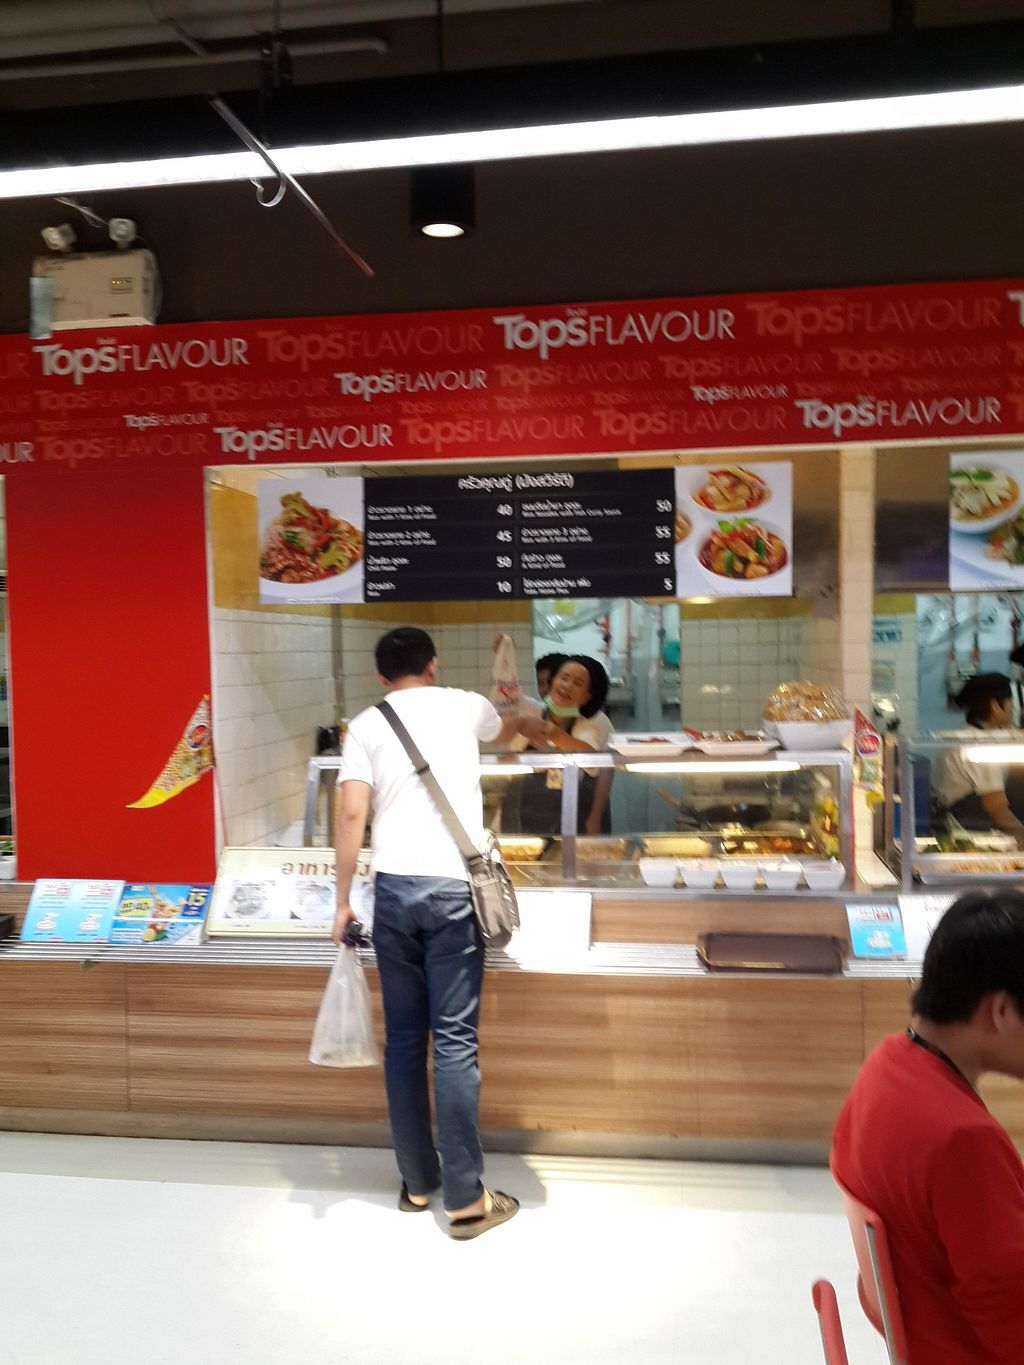 "Photo of TOPS Food Court - Seacon Square  by <a href=""/members/profile/Ianthewander"">Ianthewander</a> <br/>The place <br/> March 19, 2016  - <a href='/contact/abuse/image/37768/140488'>Report</a>"